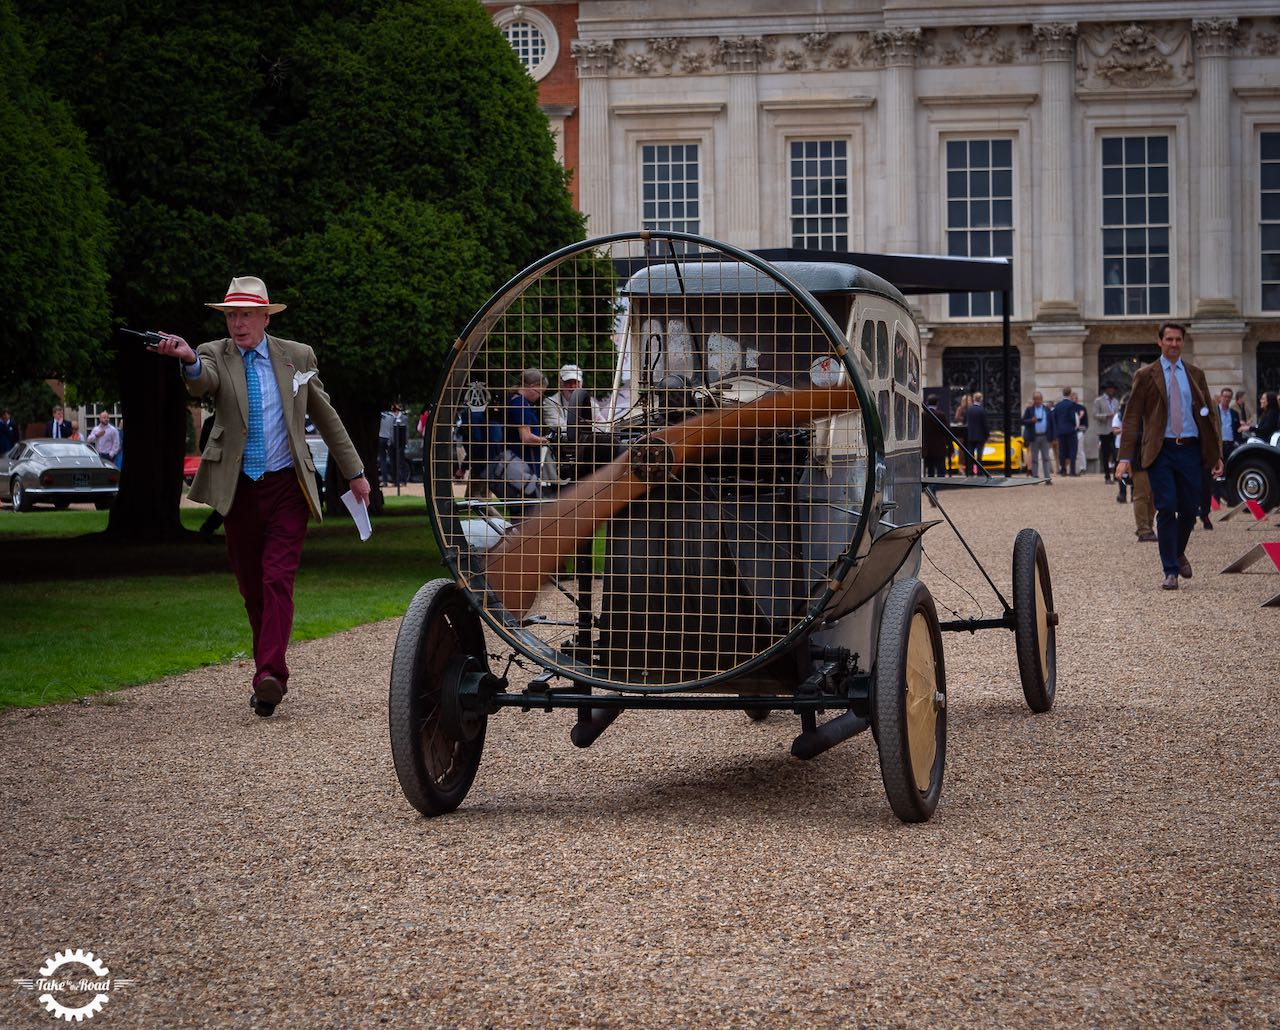 Concours of Elegance - Automotive Perfection at the Palace